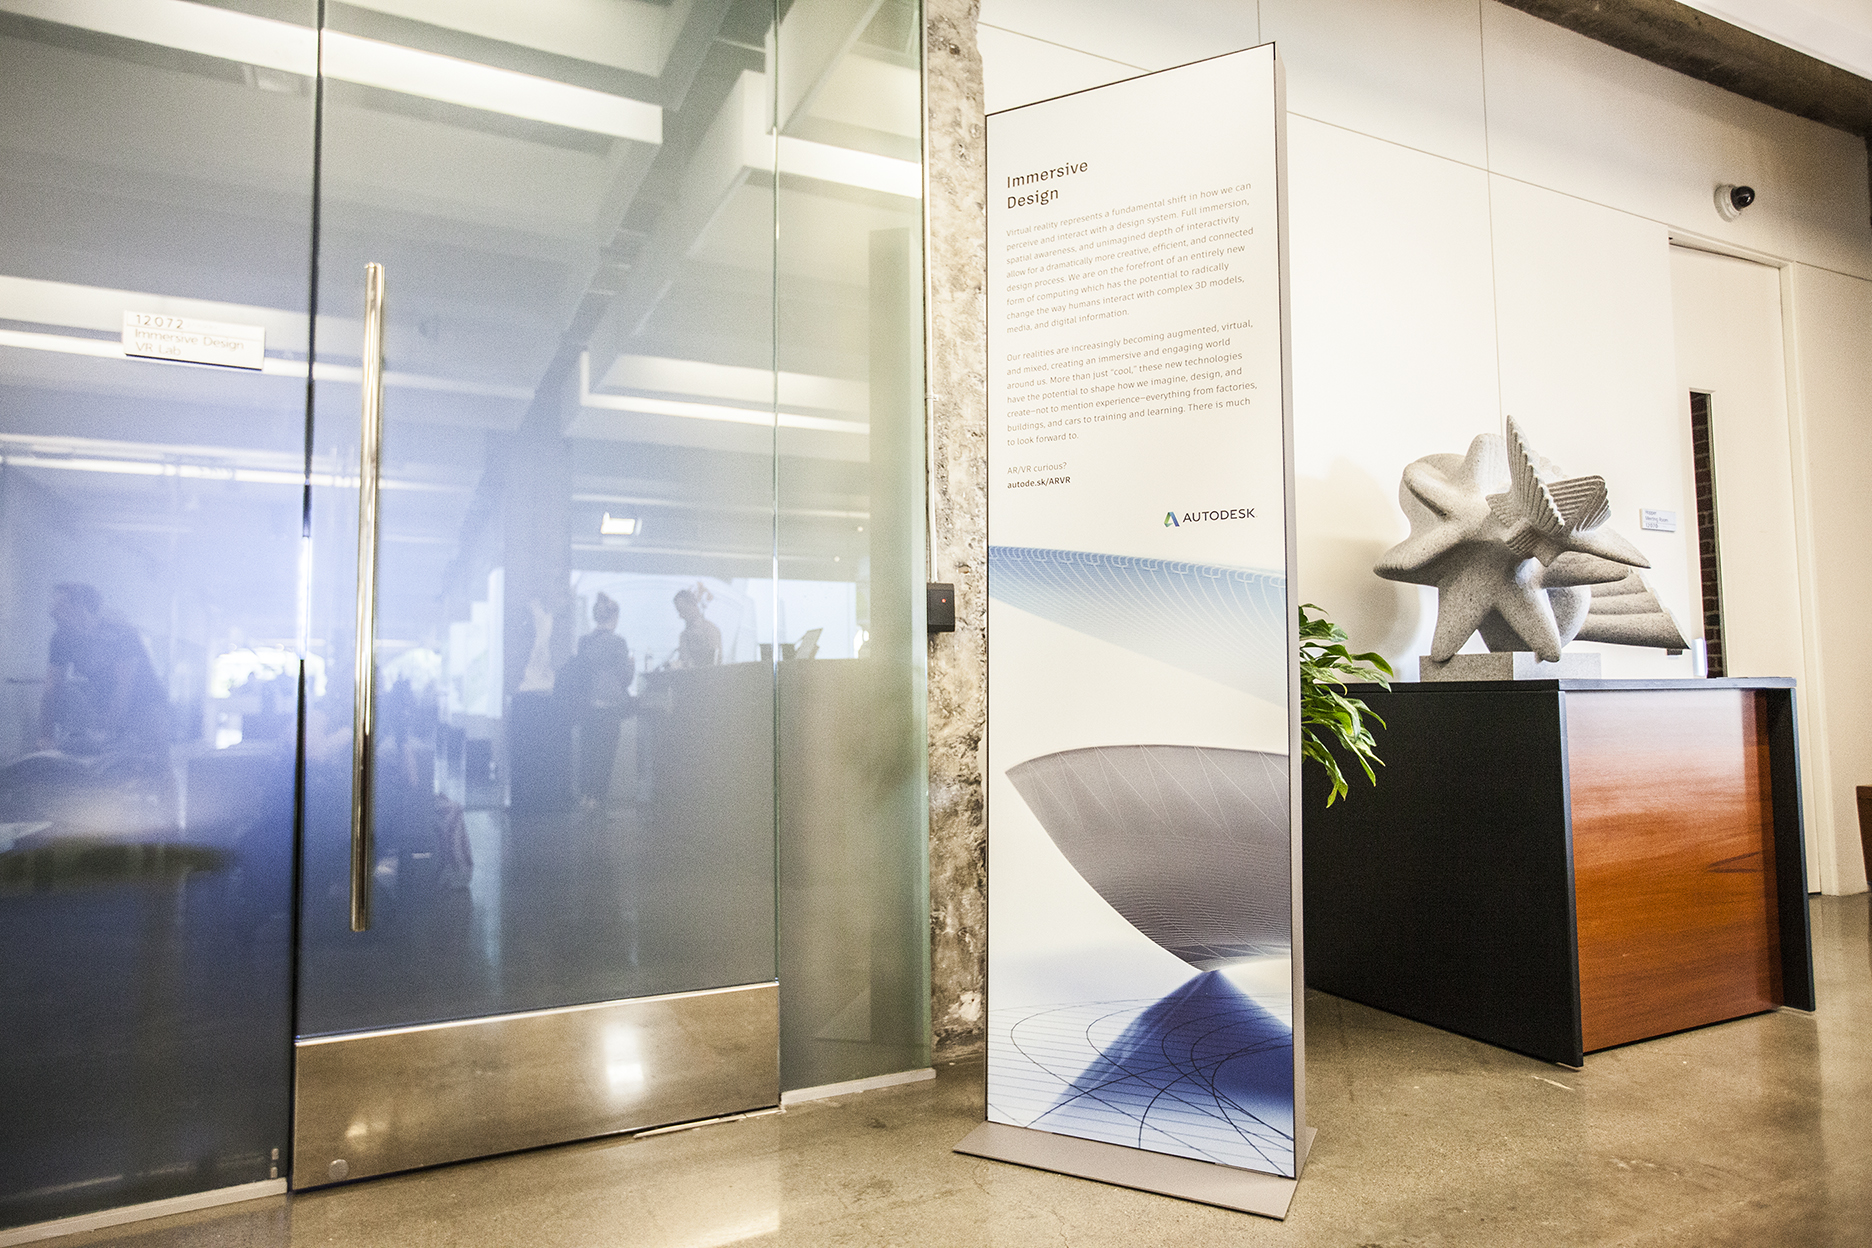 In their final location in and outside the gallery, the signage has a clean, unobtrusive look.